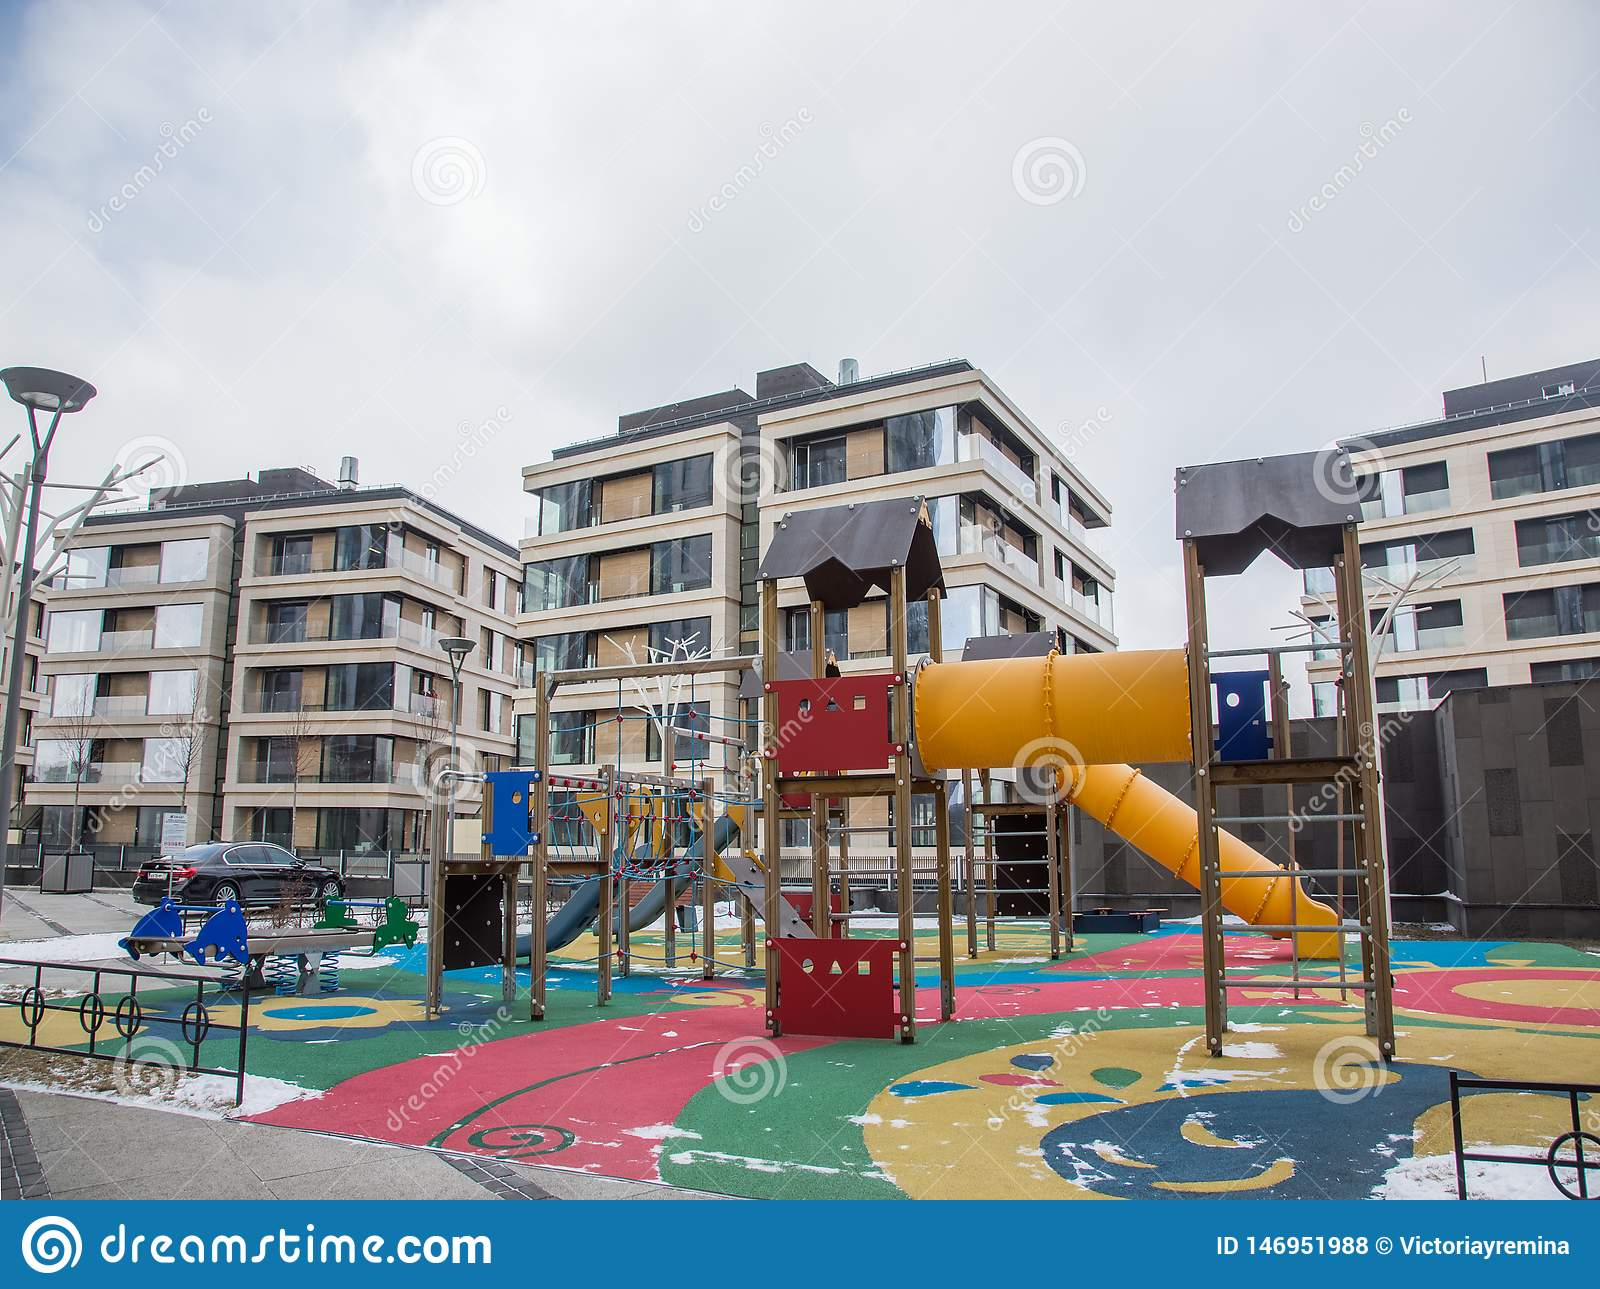 Children`s playground in the courtyard of a residential area